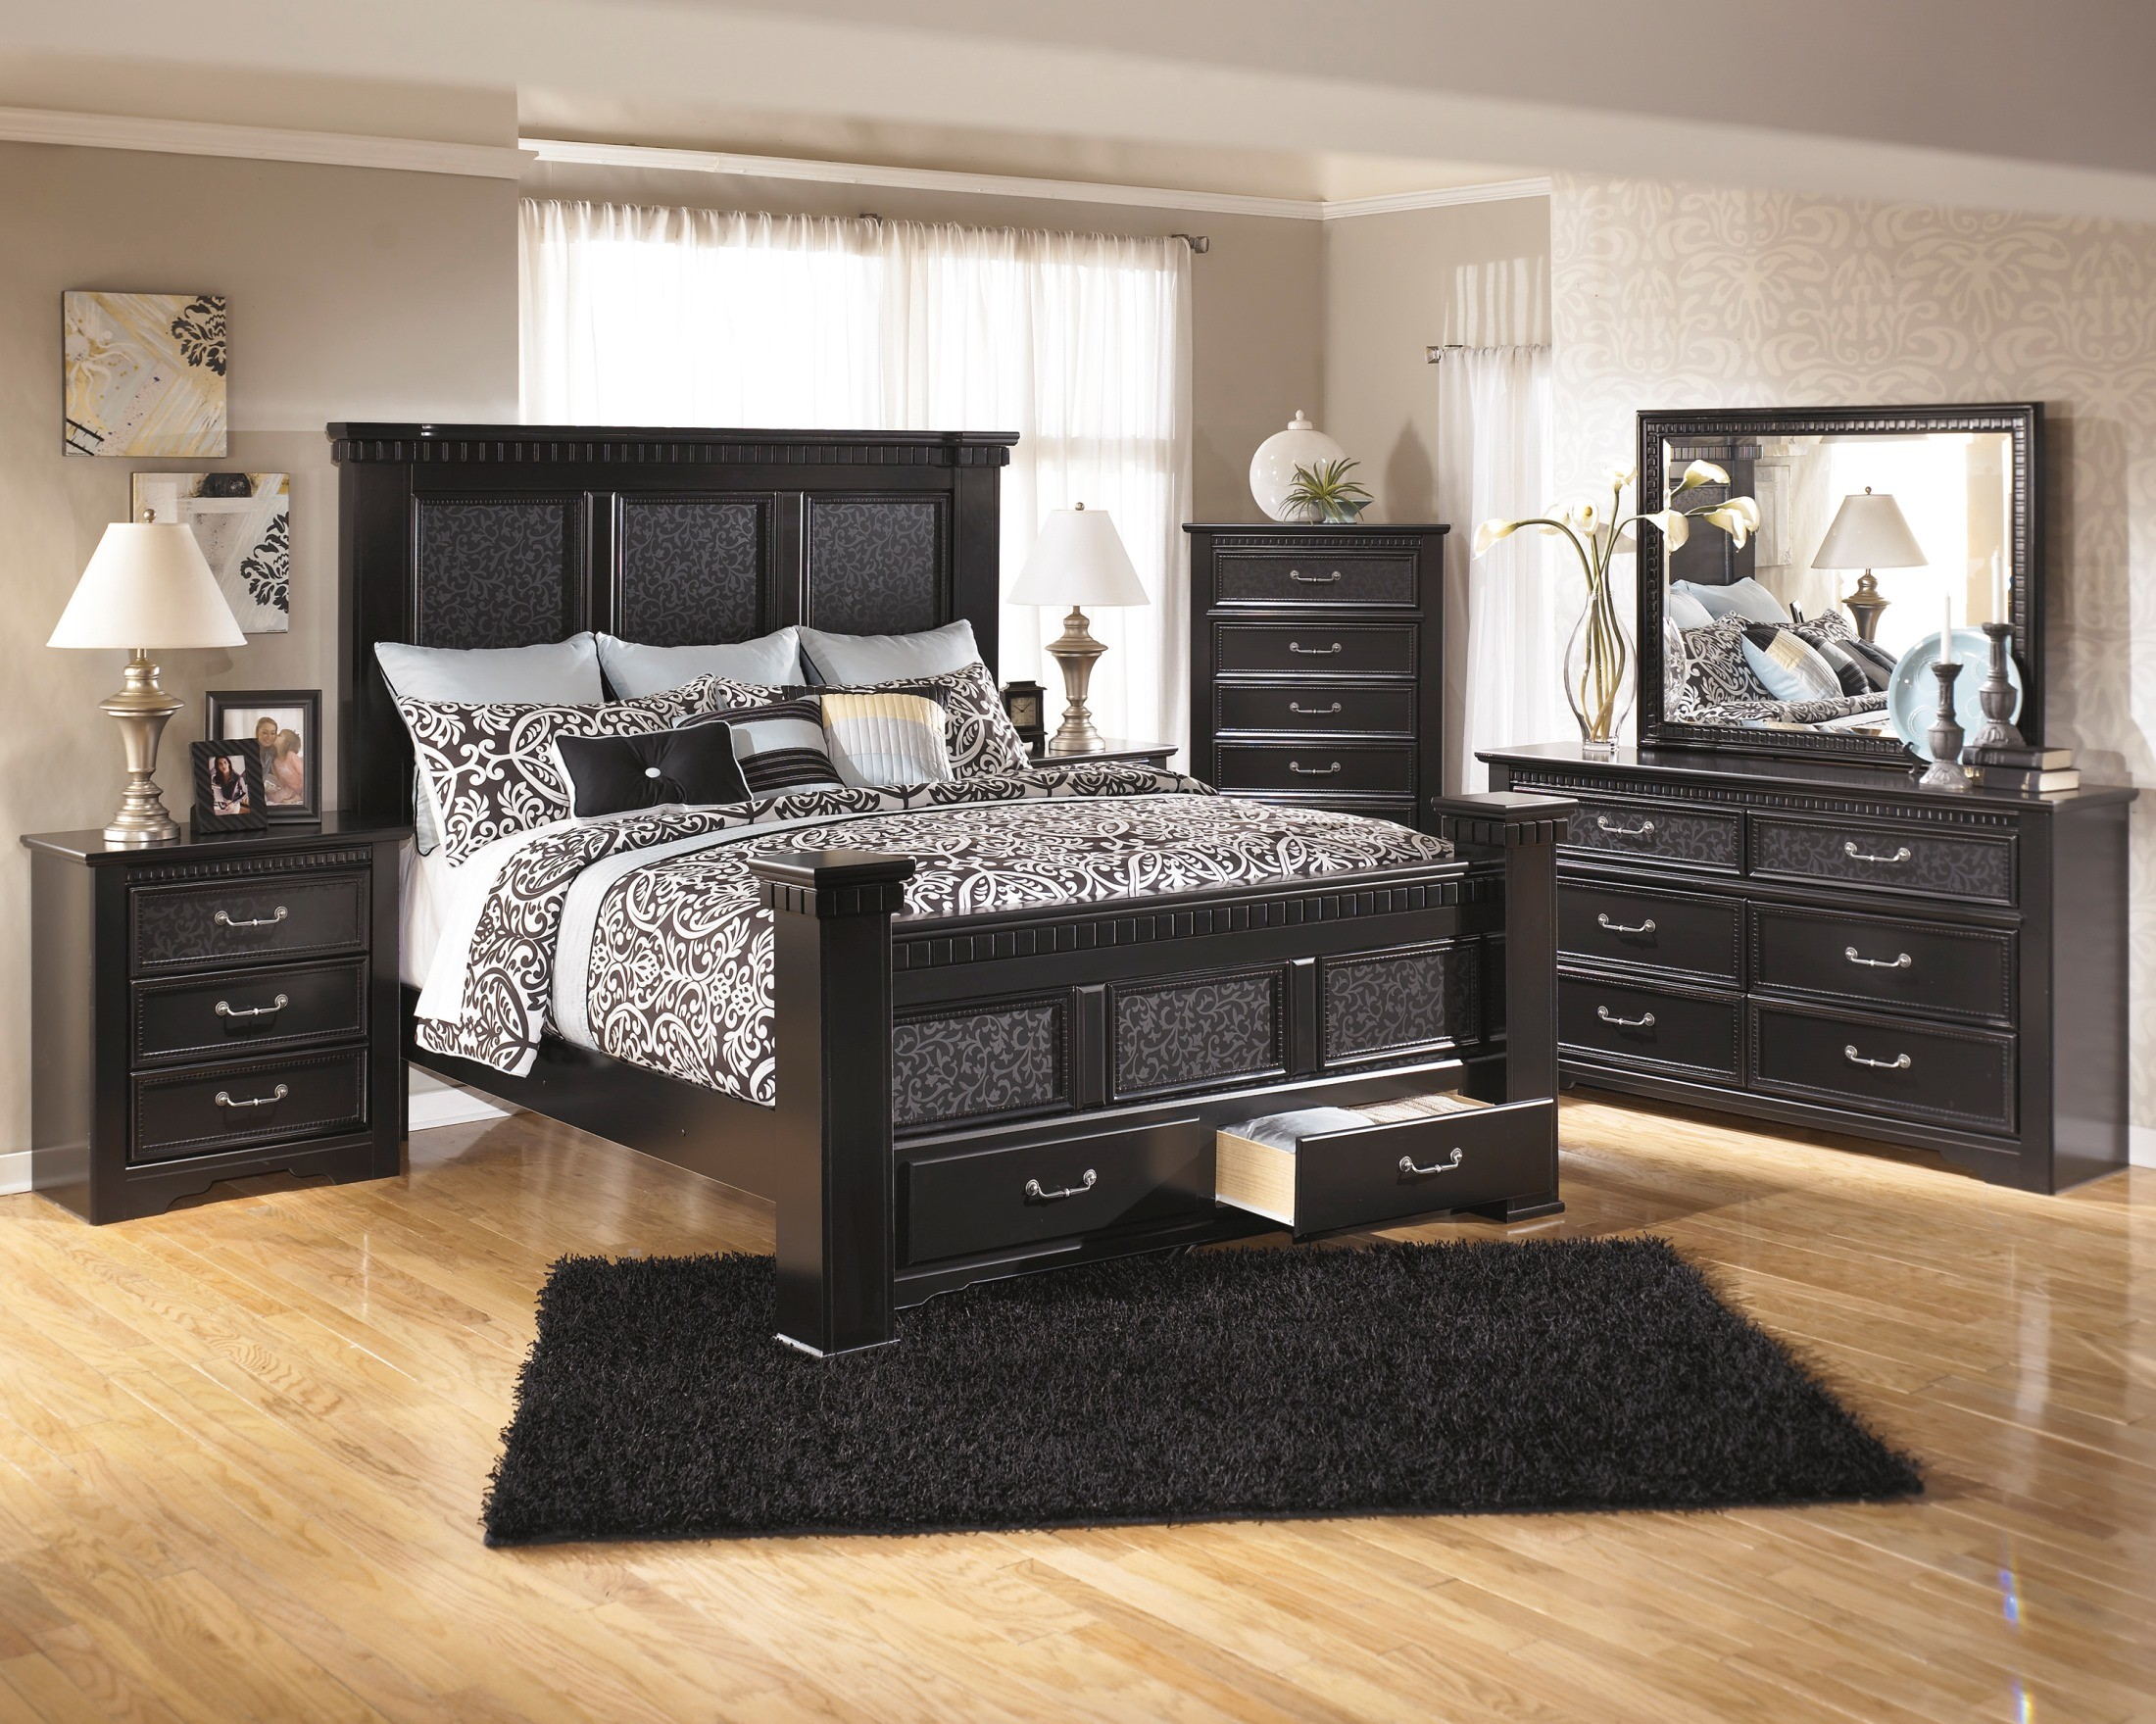 Cavallino Cal King Storage Mansion Bed from Ashley B291 158 166S